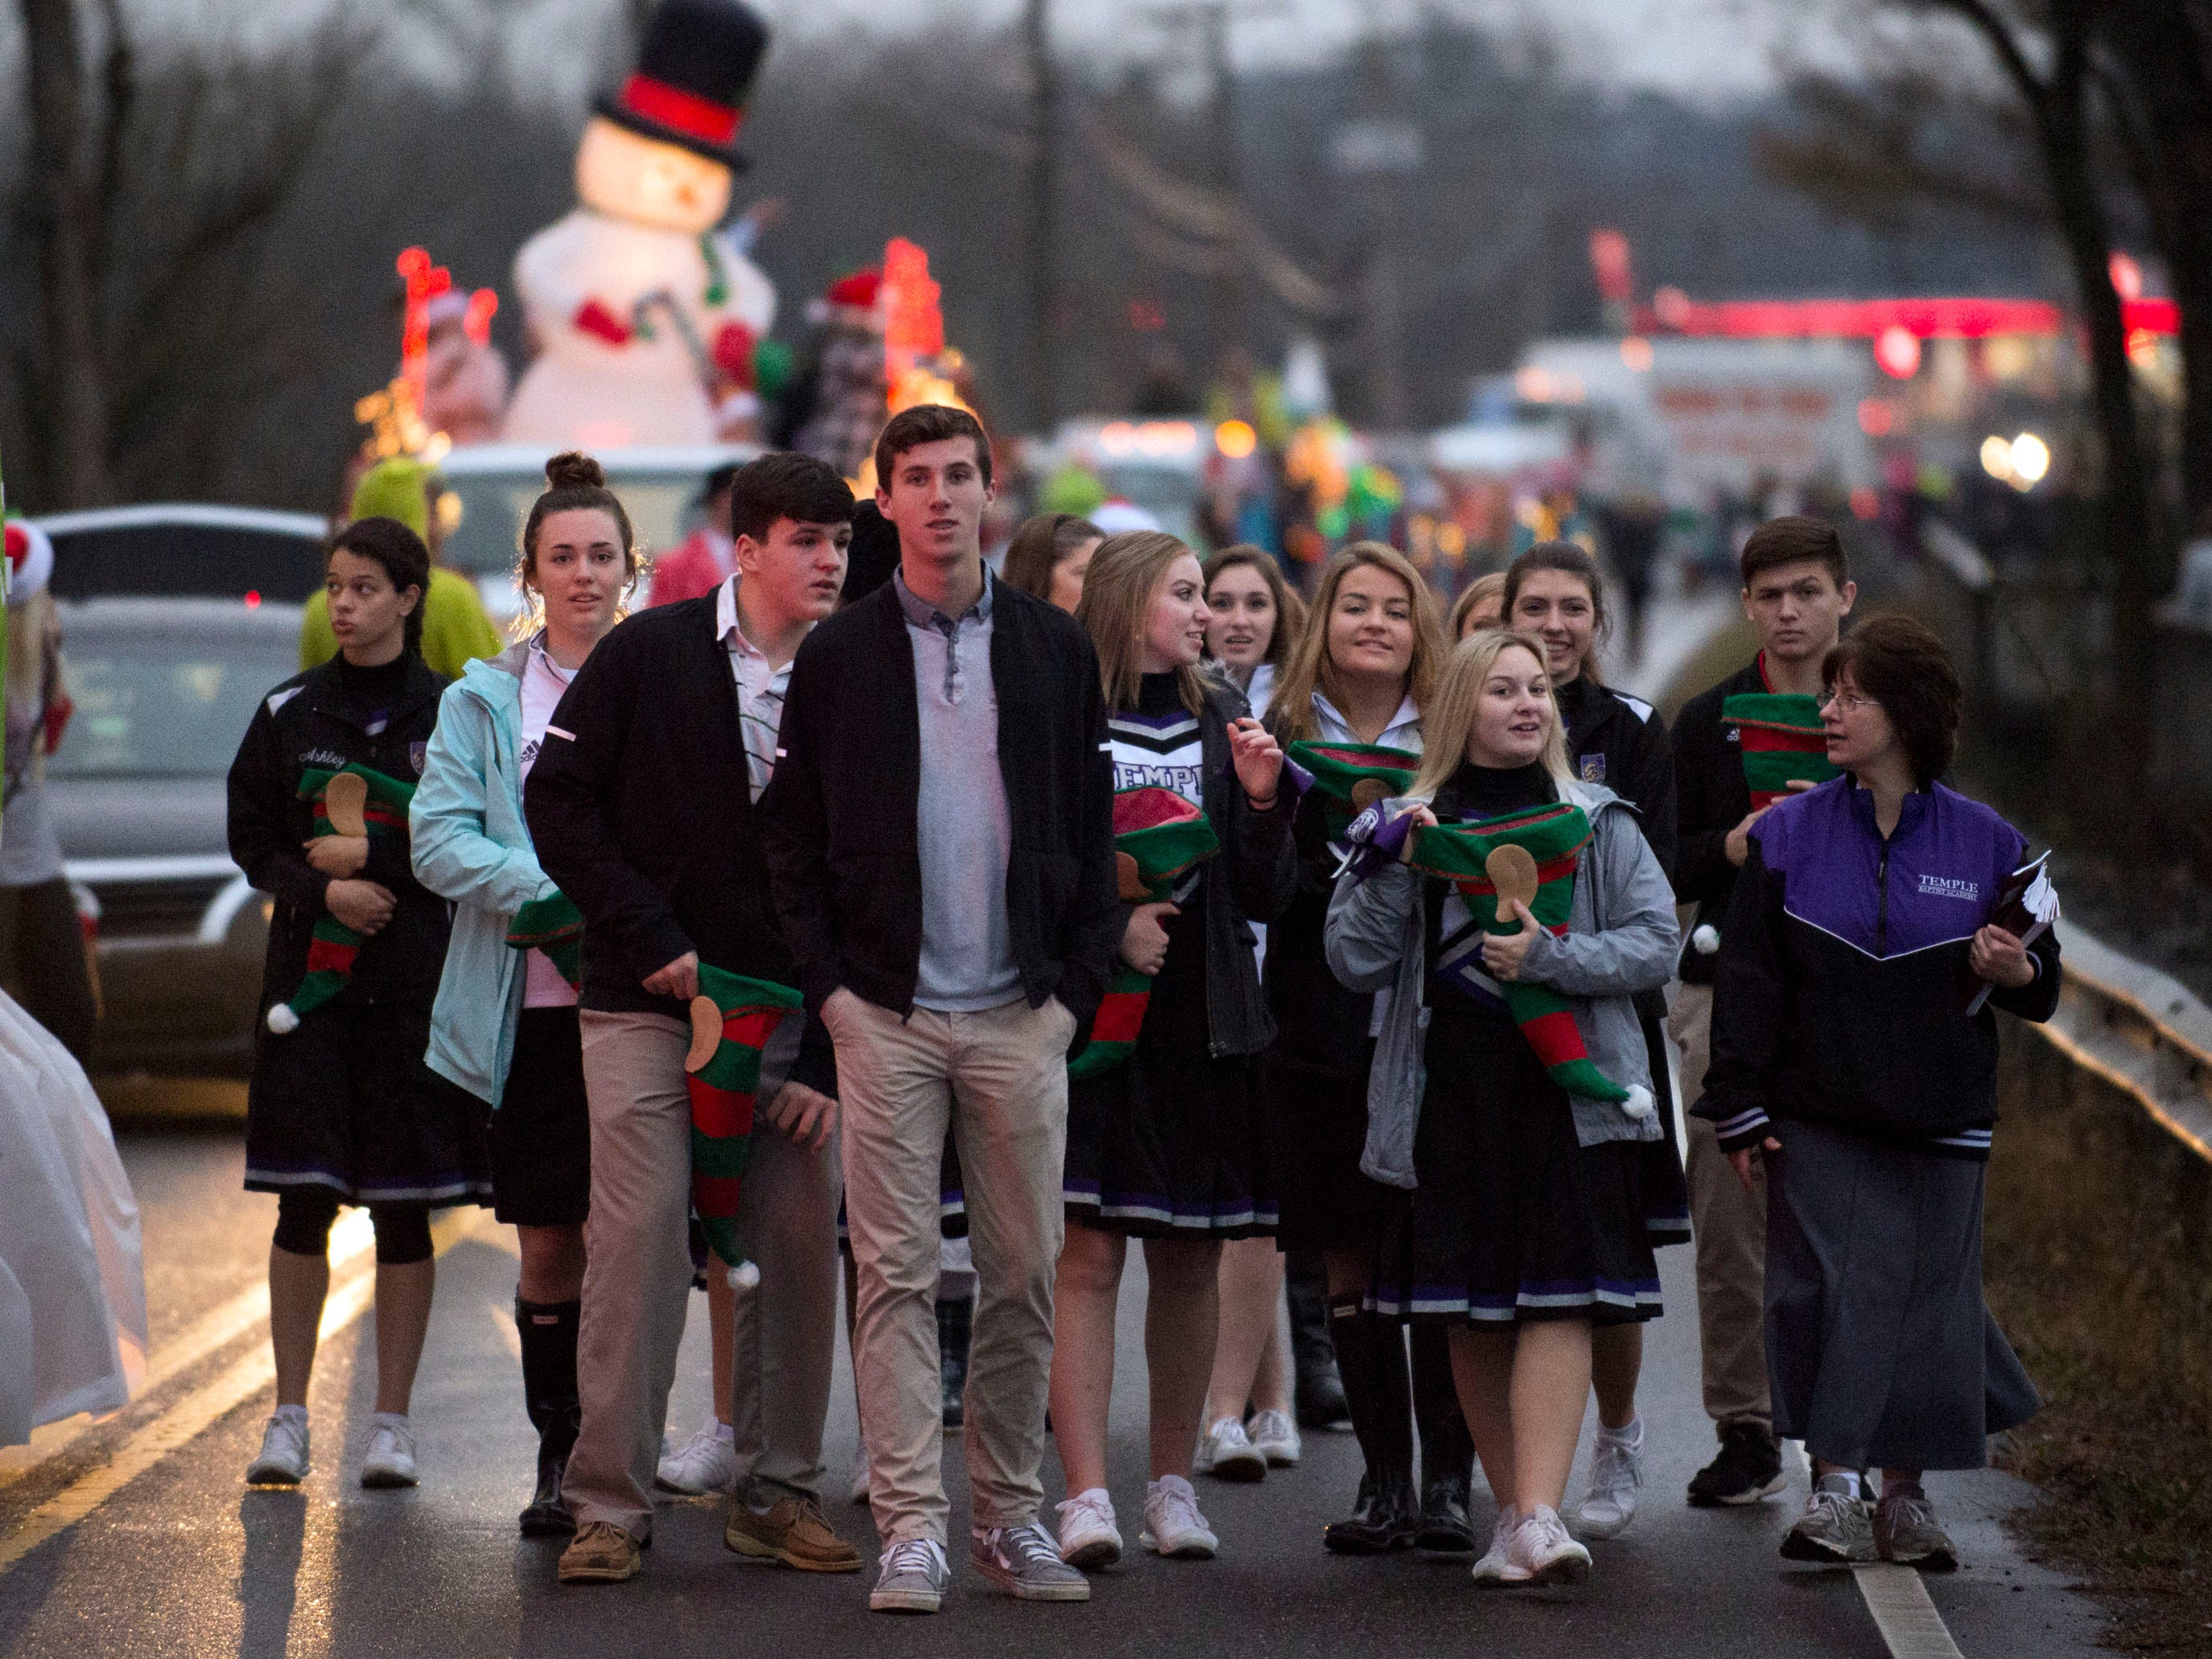 Temple Baptist Academy in the Powell Lions Club Christmas Parade on Saturday, December 1, 2018.